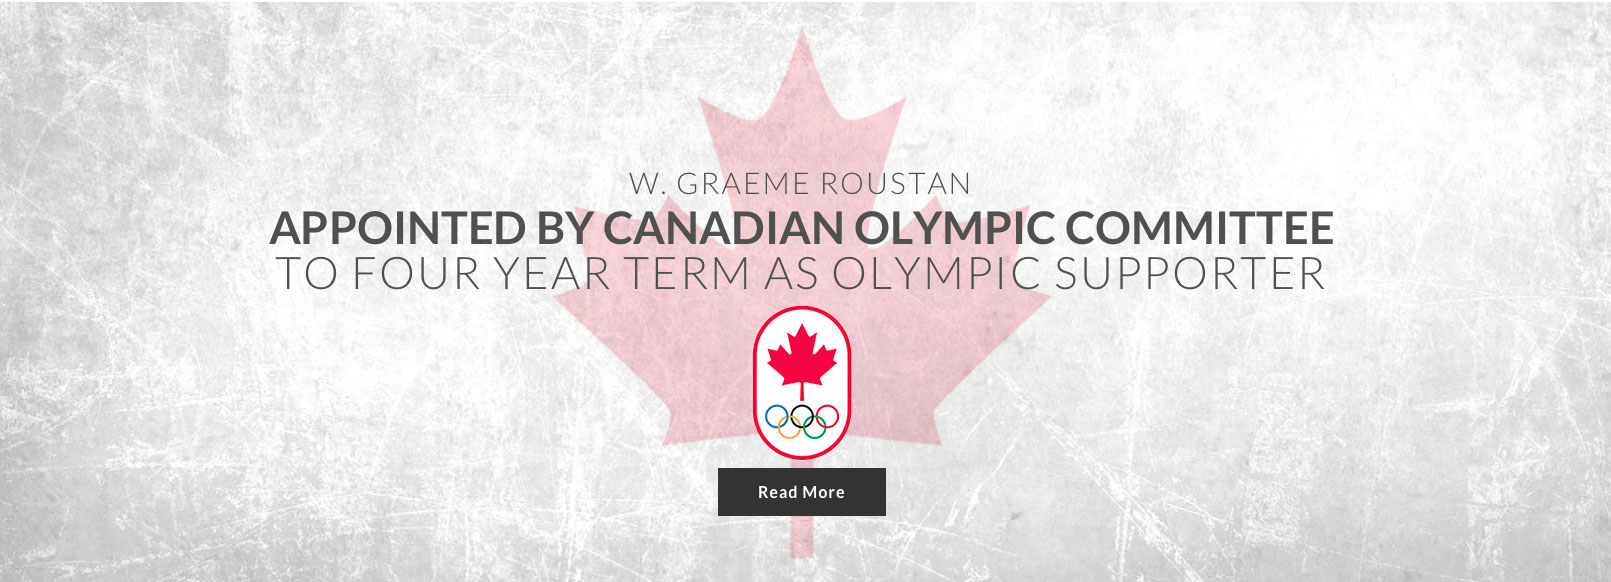 Home Page Sliders Roustan Appointed By Olympic Committee